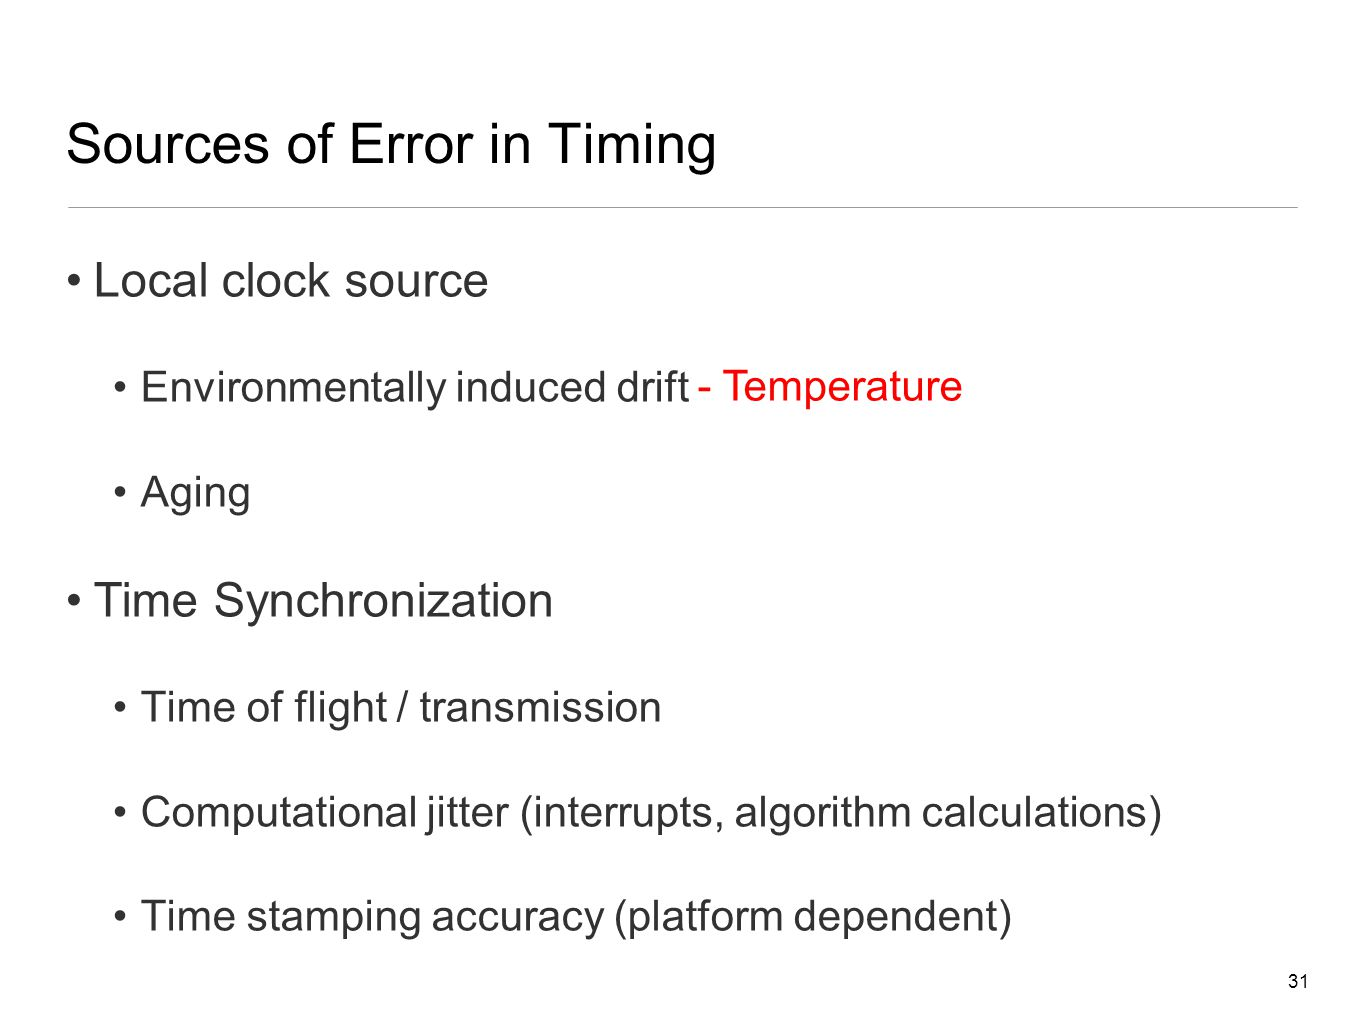 31 Sources of Error in Timing Local clock source Environmentally induced drift Aging Time Synchronization Time of flight / transmission Computational jitter (interrupts, algorithm calculations) Time stamping accuracy (platform dependent) - Temperature